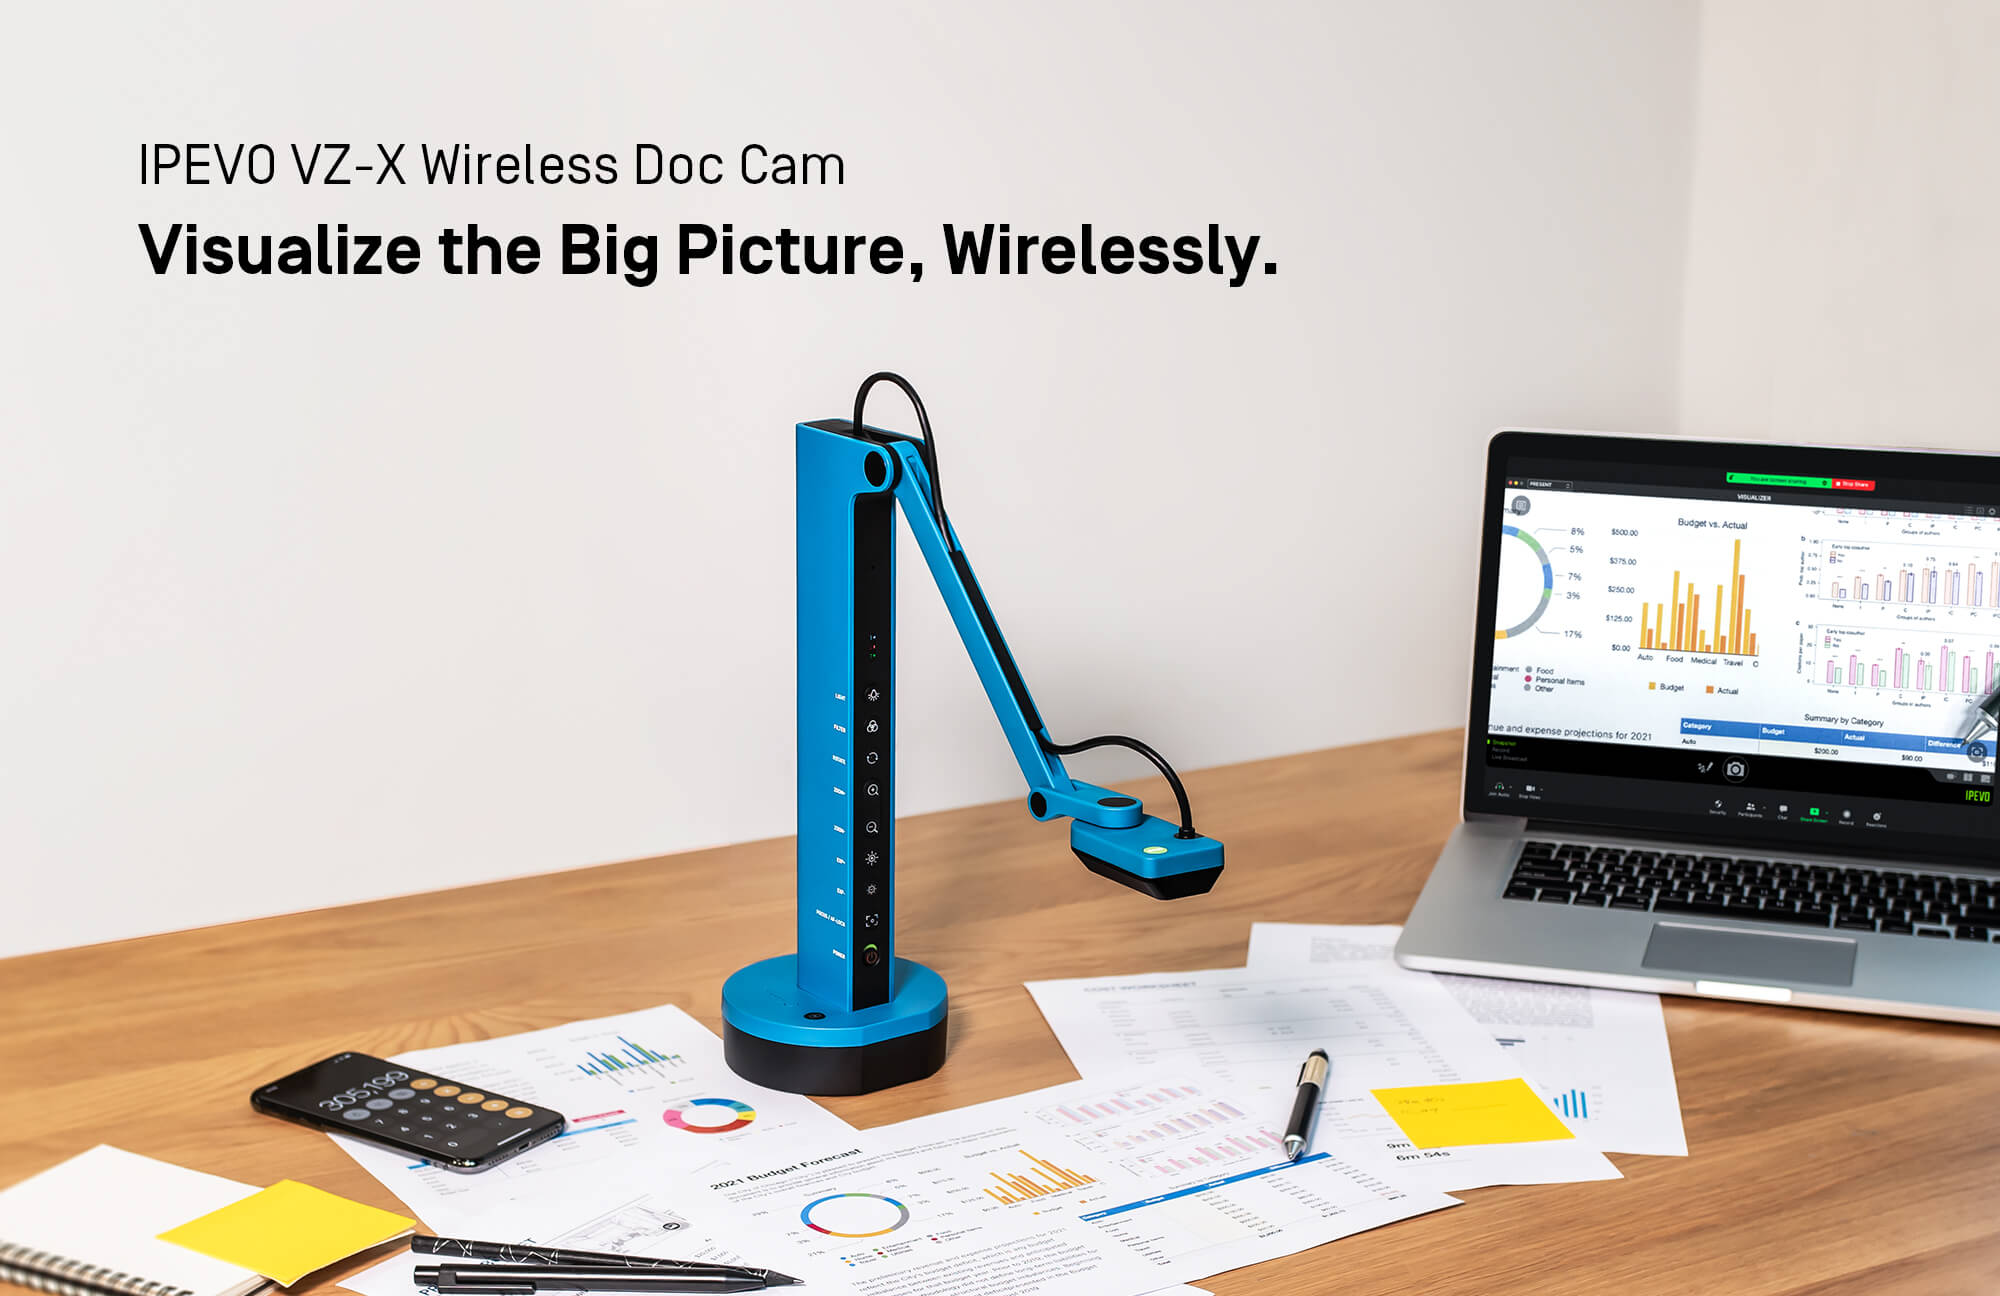 IPEVO VZ-X Wireless Doc Cam Visualize the Big Picture, Clearly, Wirelessly.